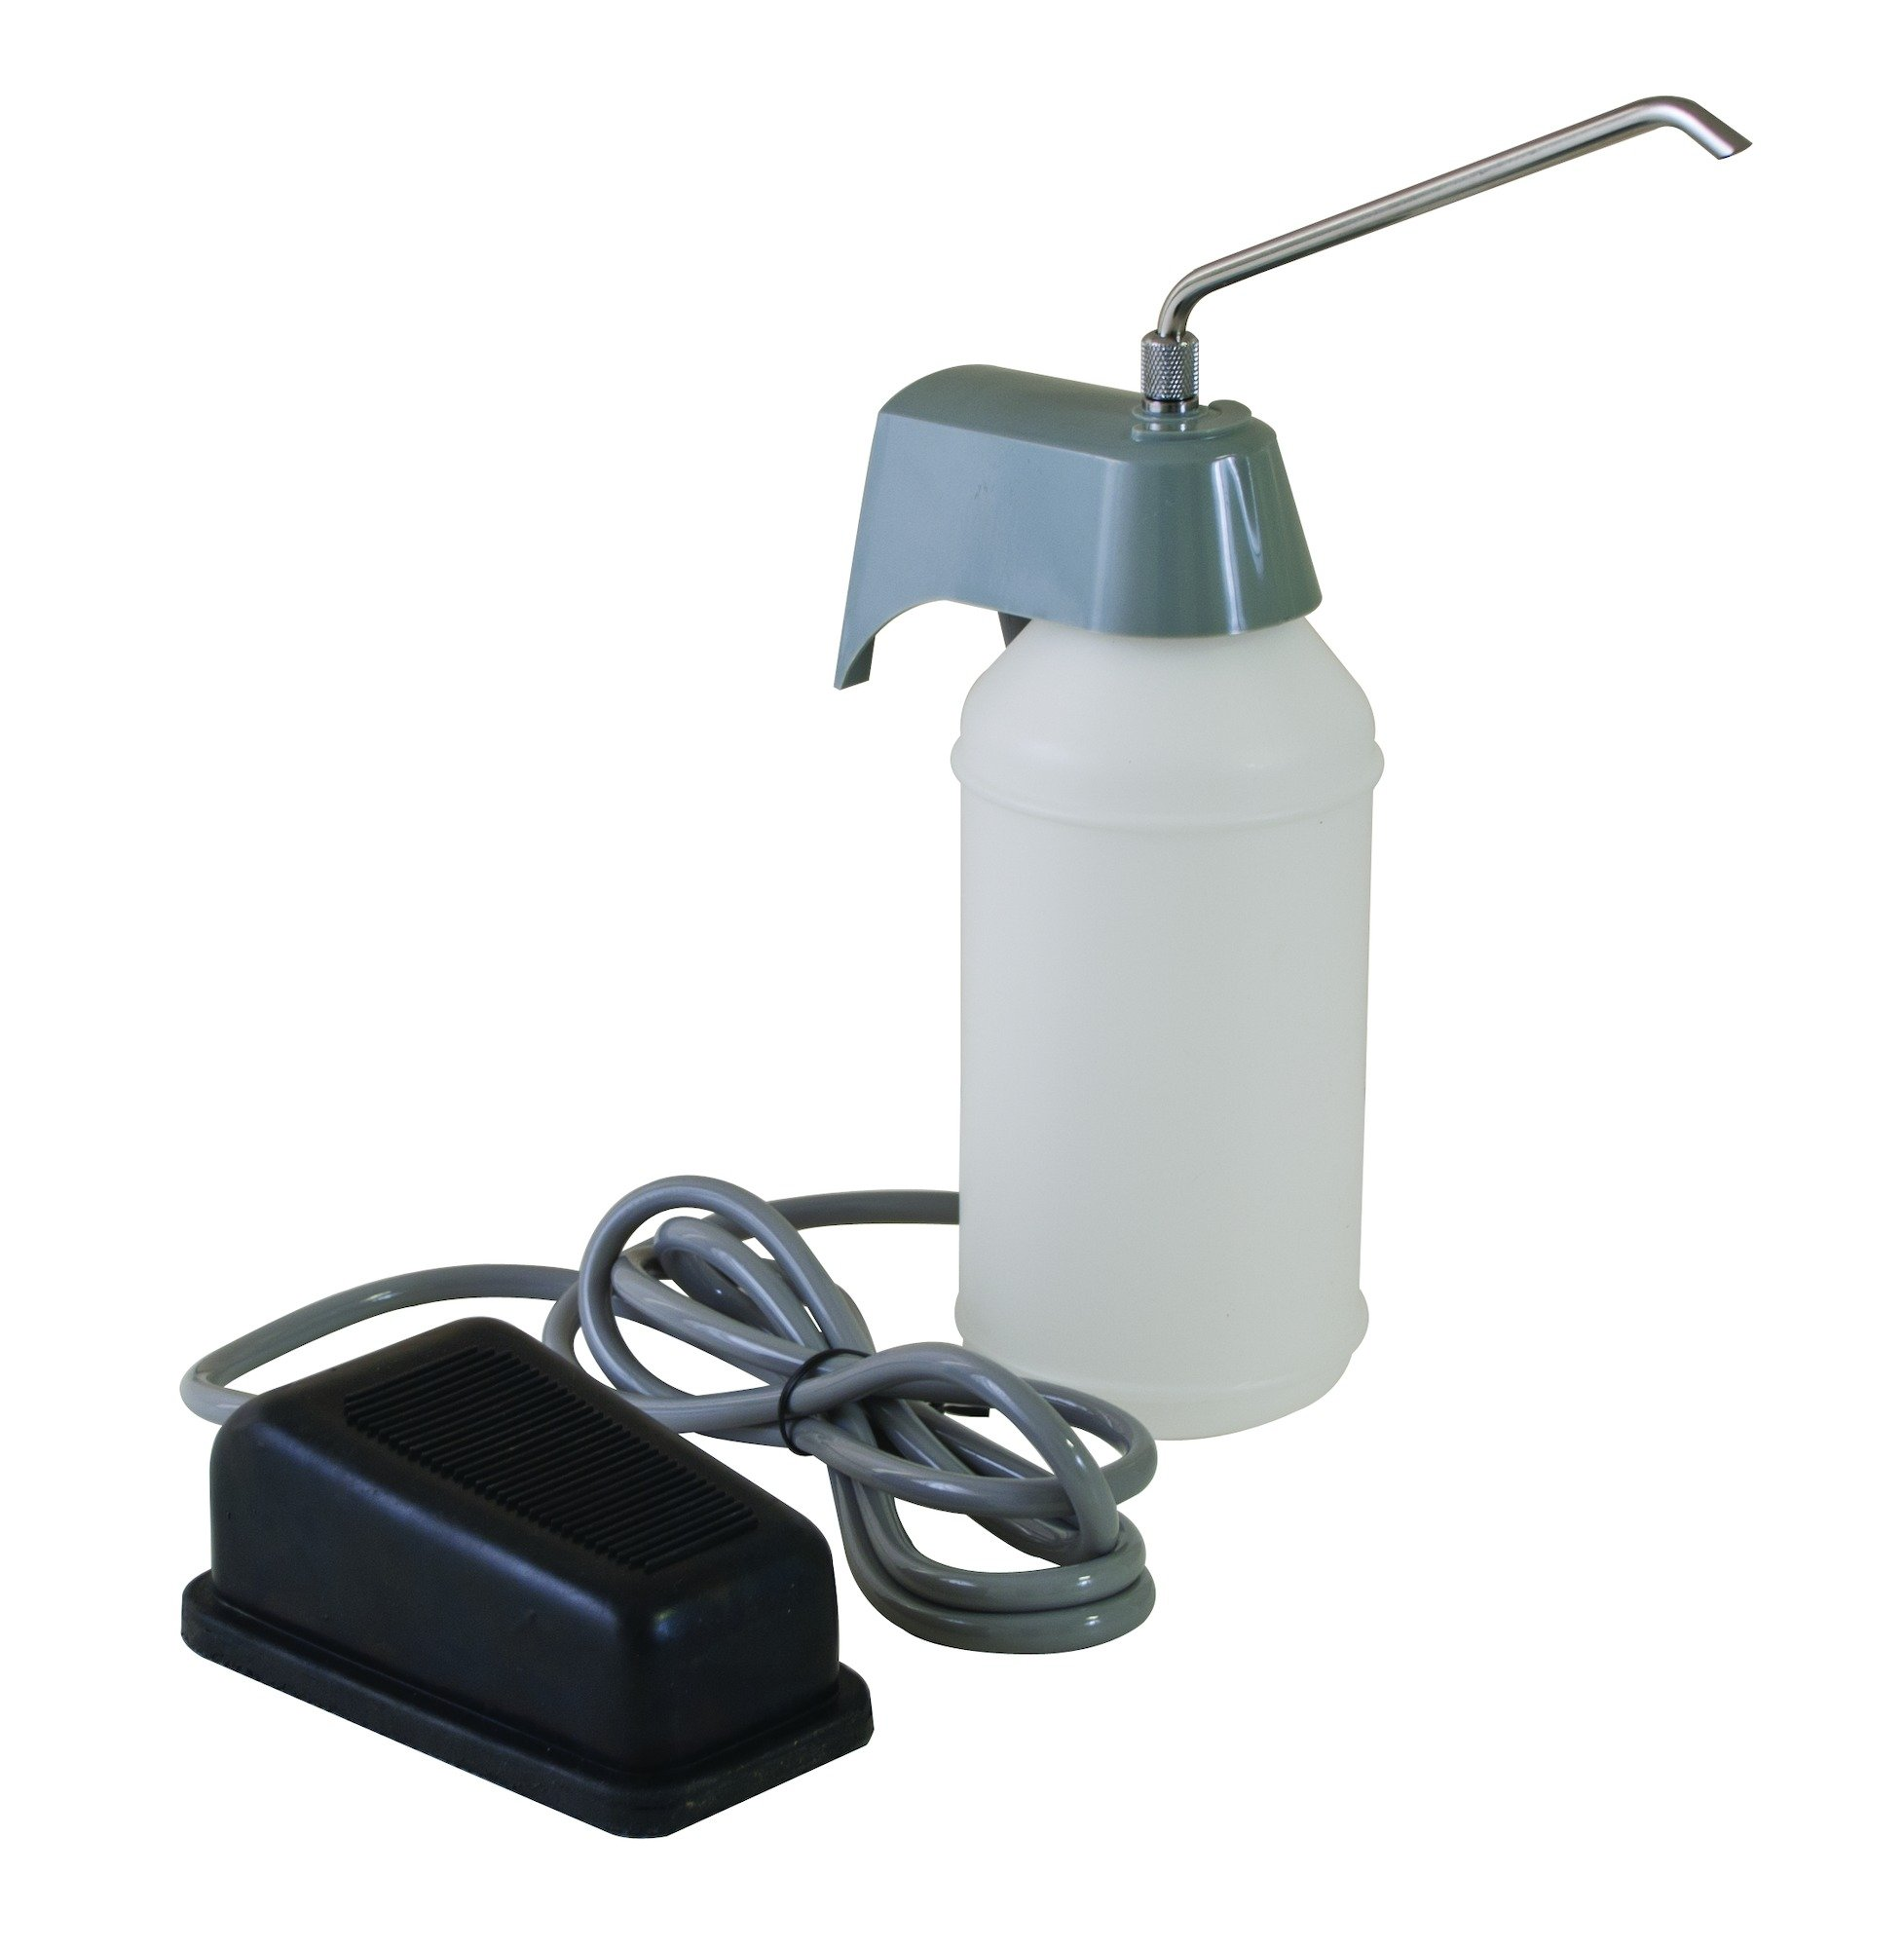 Bradley Foot Operated Soap Dispenser 6843 | Accurate Door & Hardware, Inc.